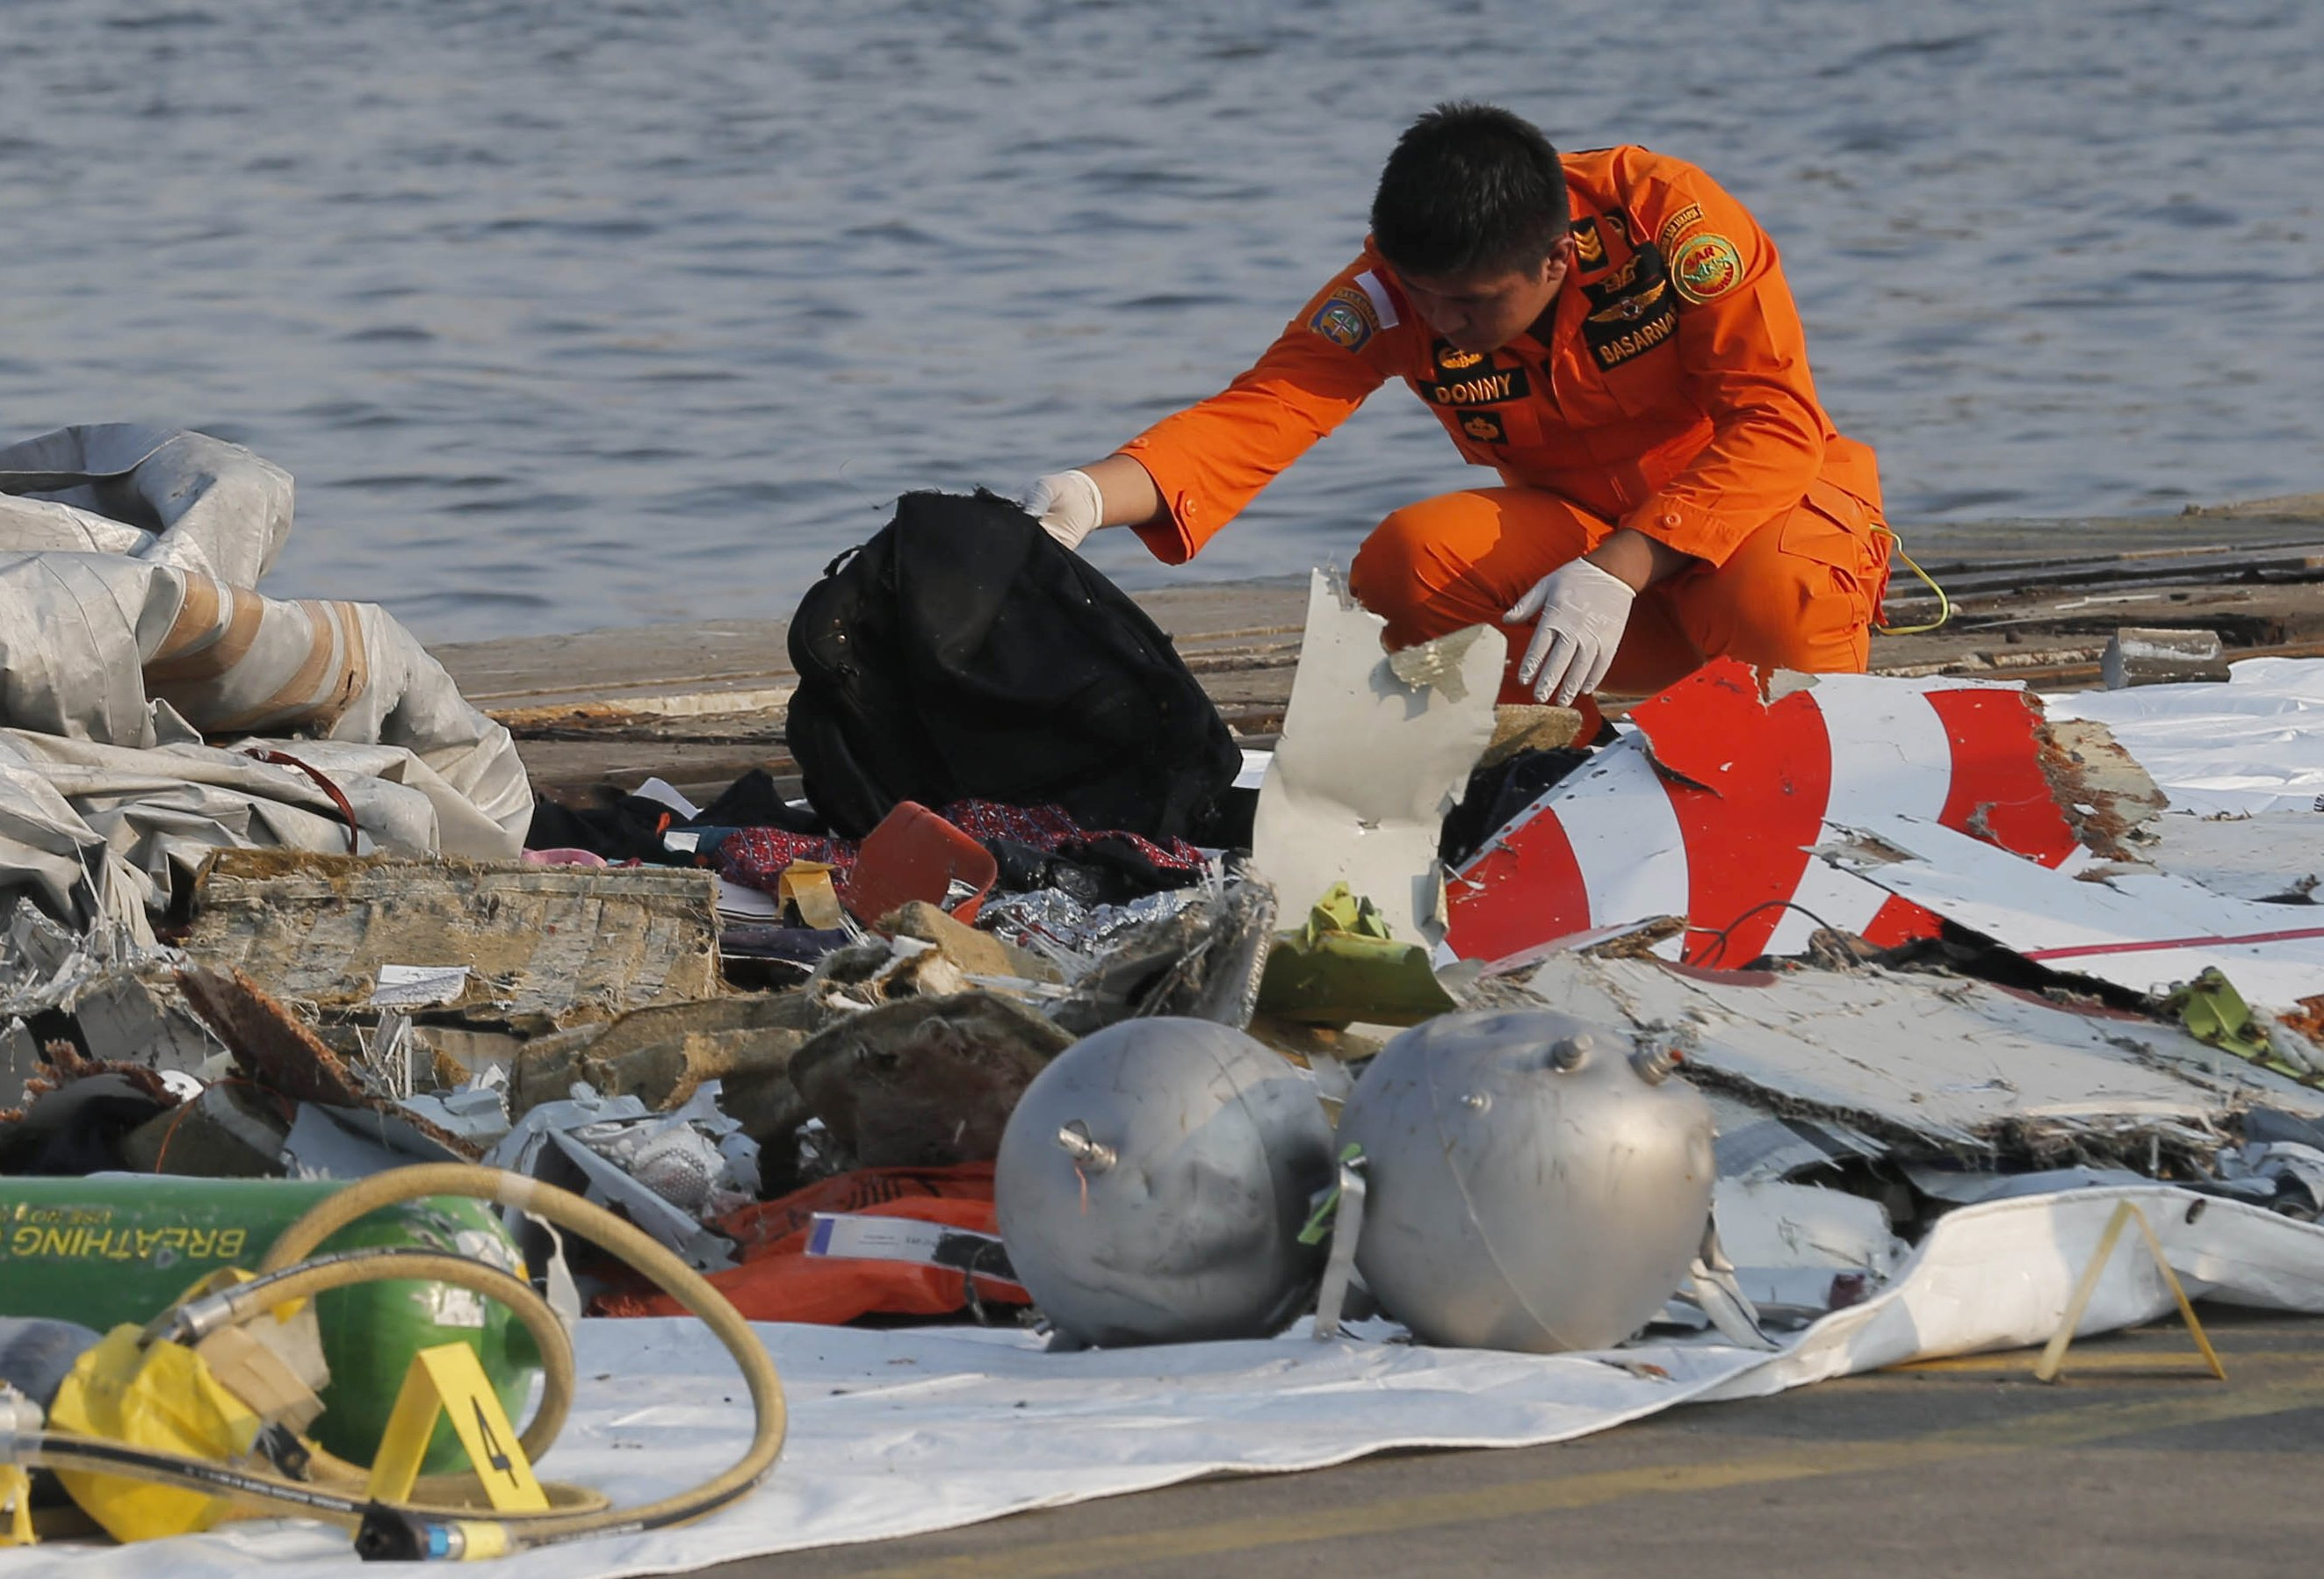 Indonesia plane crash search finds remains, debris at sea